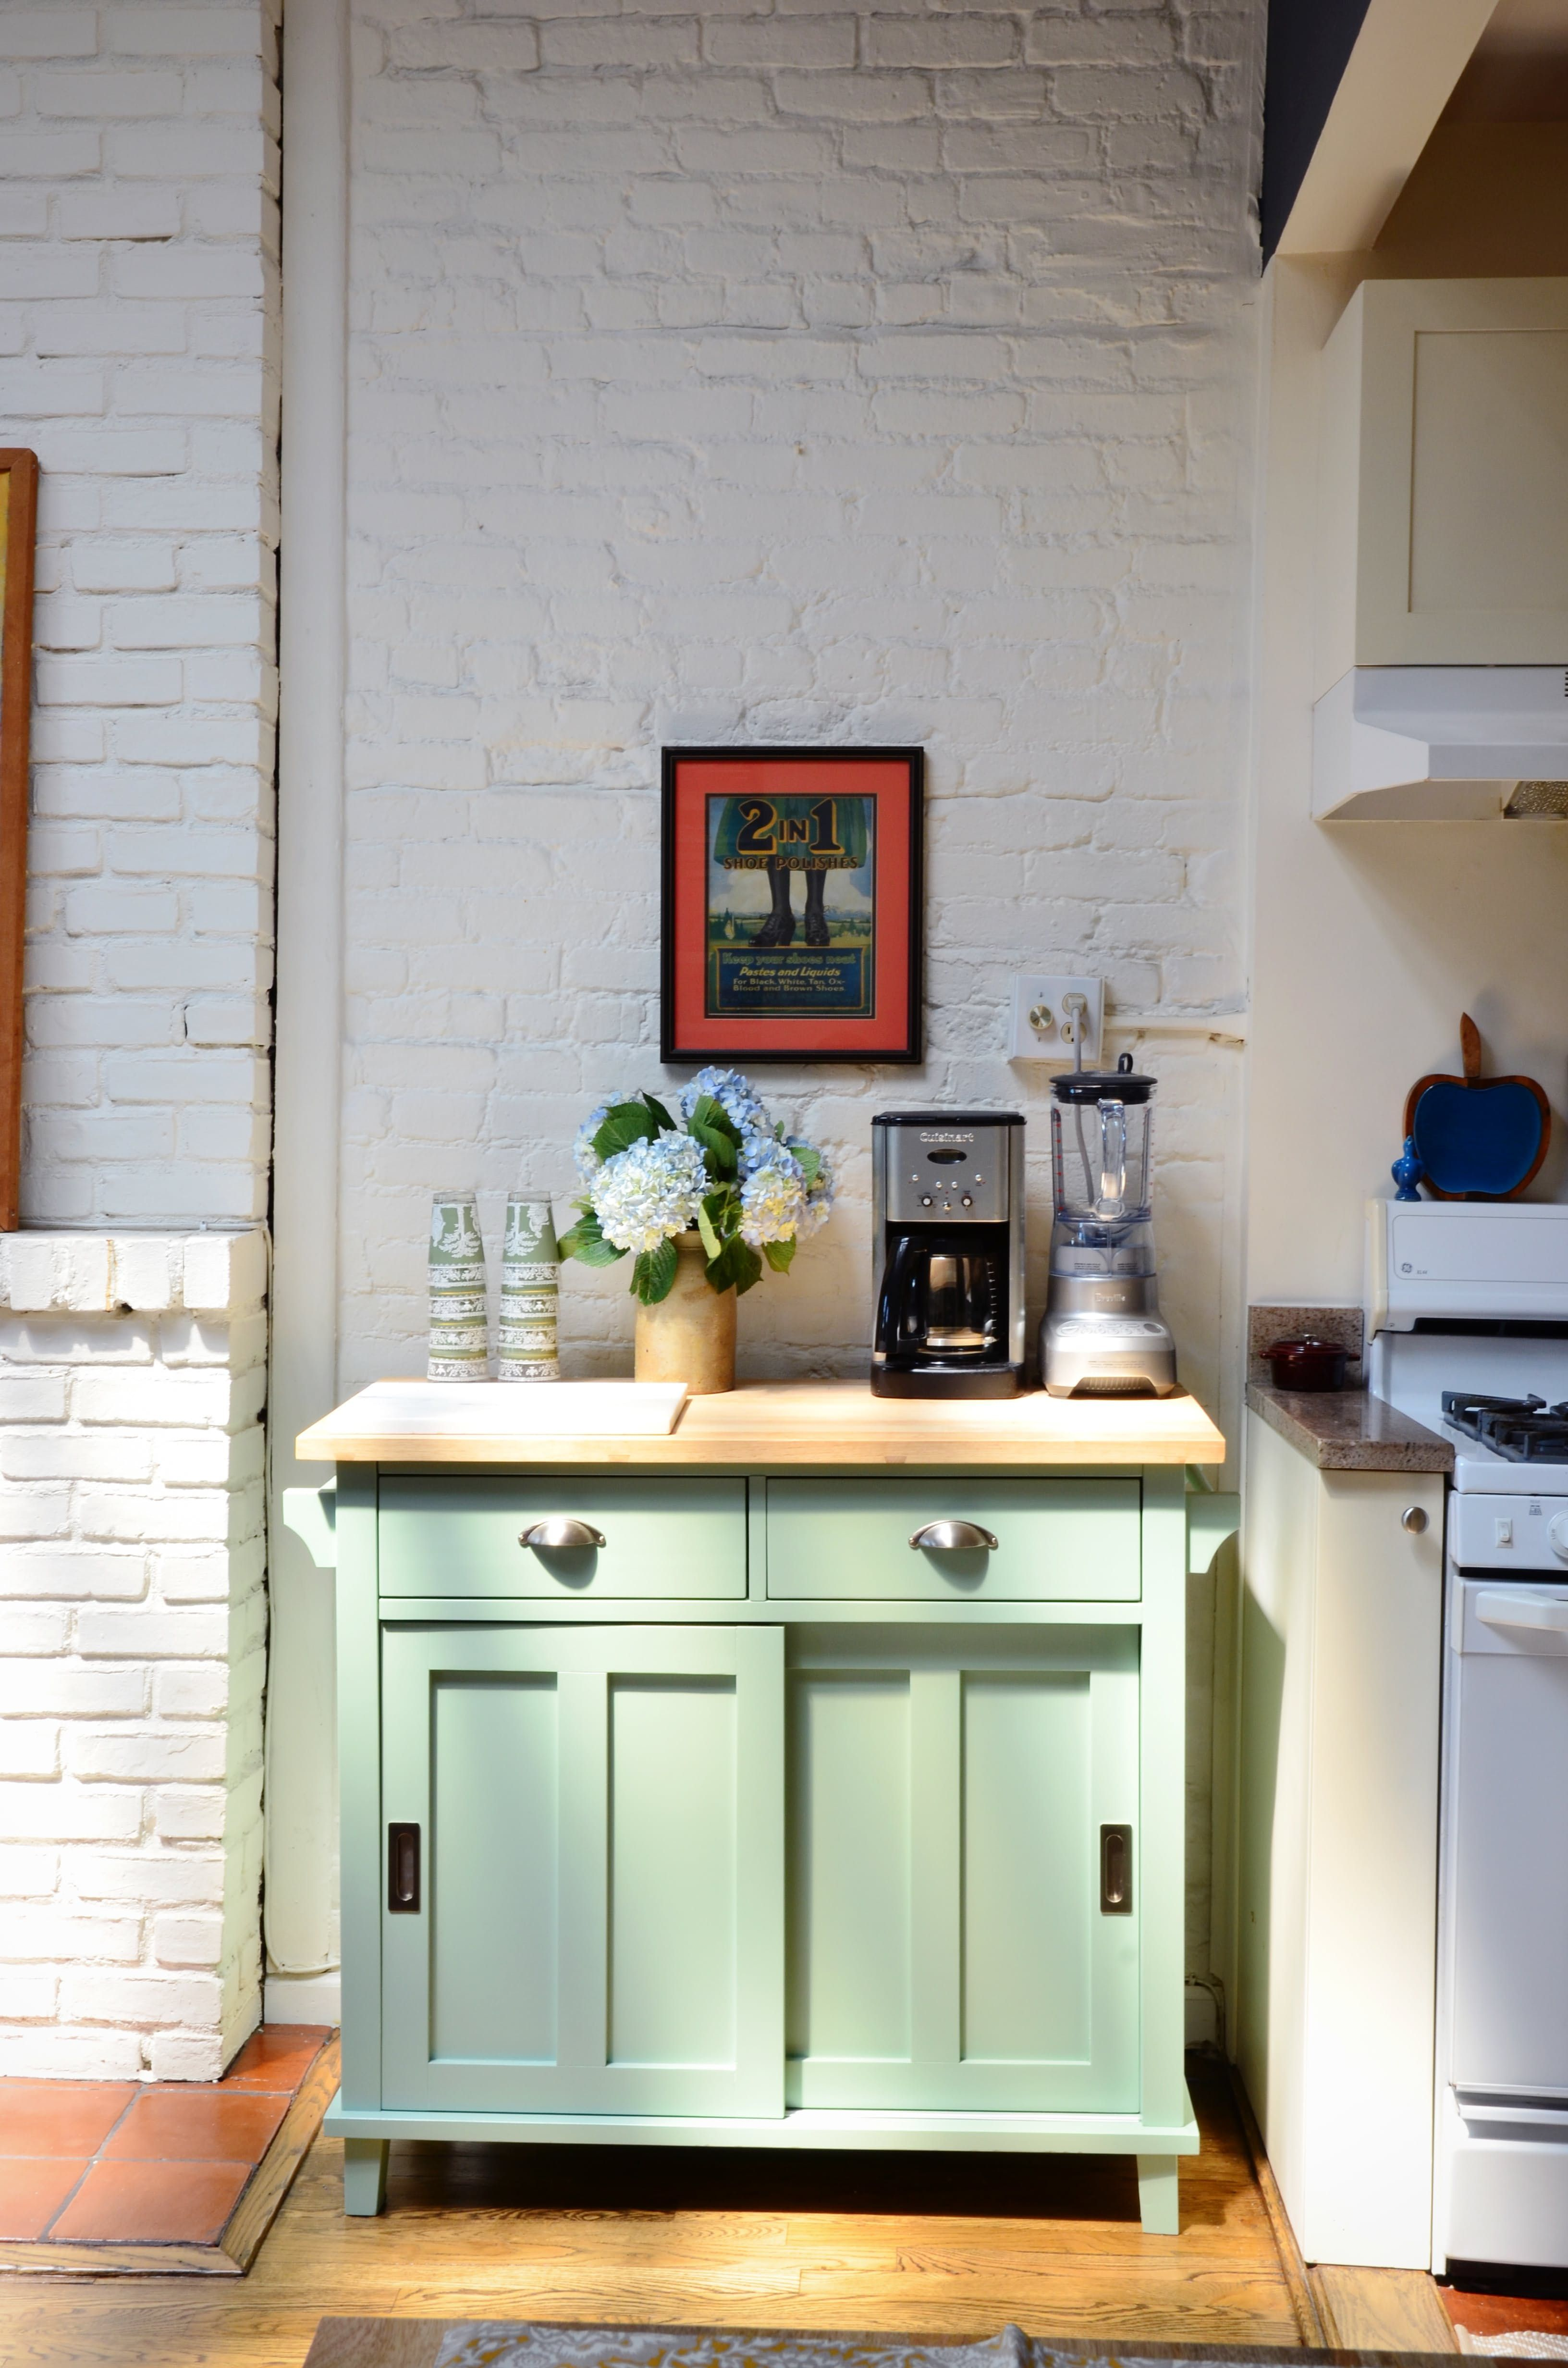 House Tour: A Novelist\'s Layered, Lived-in Brooklyn Home ...